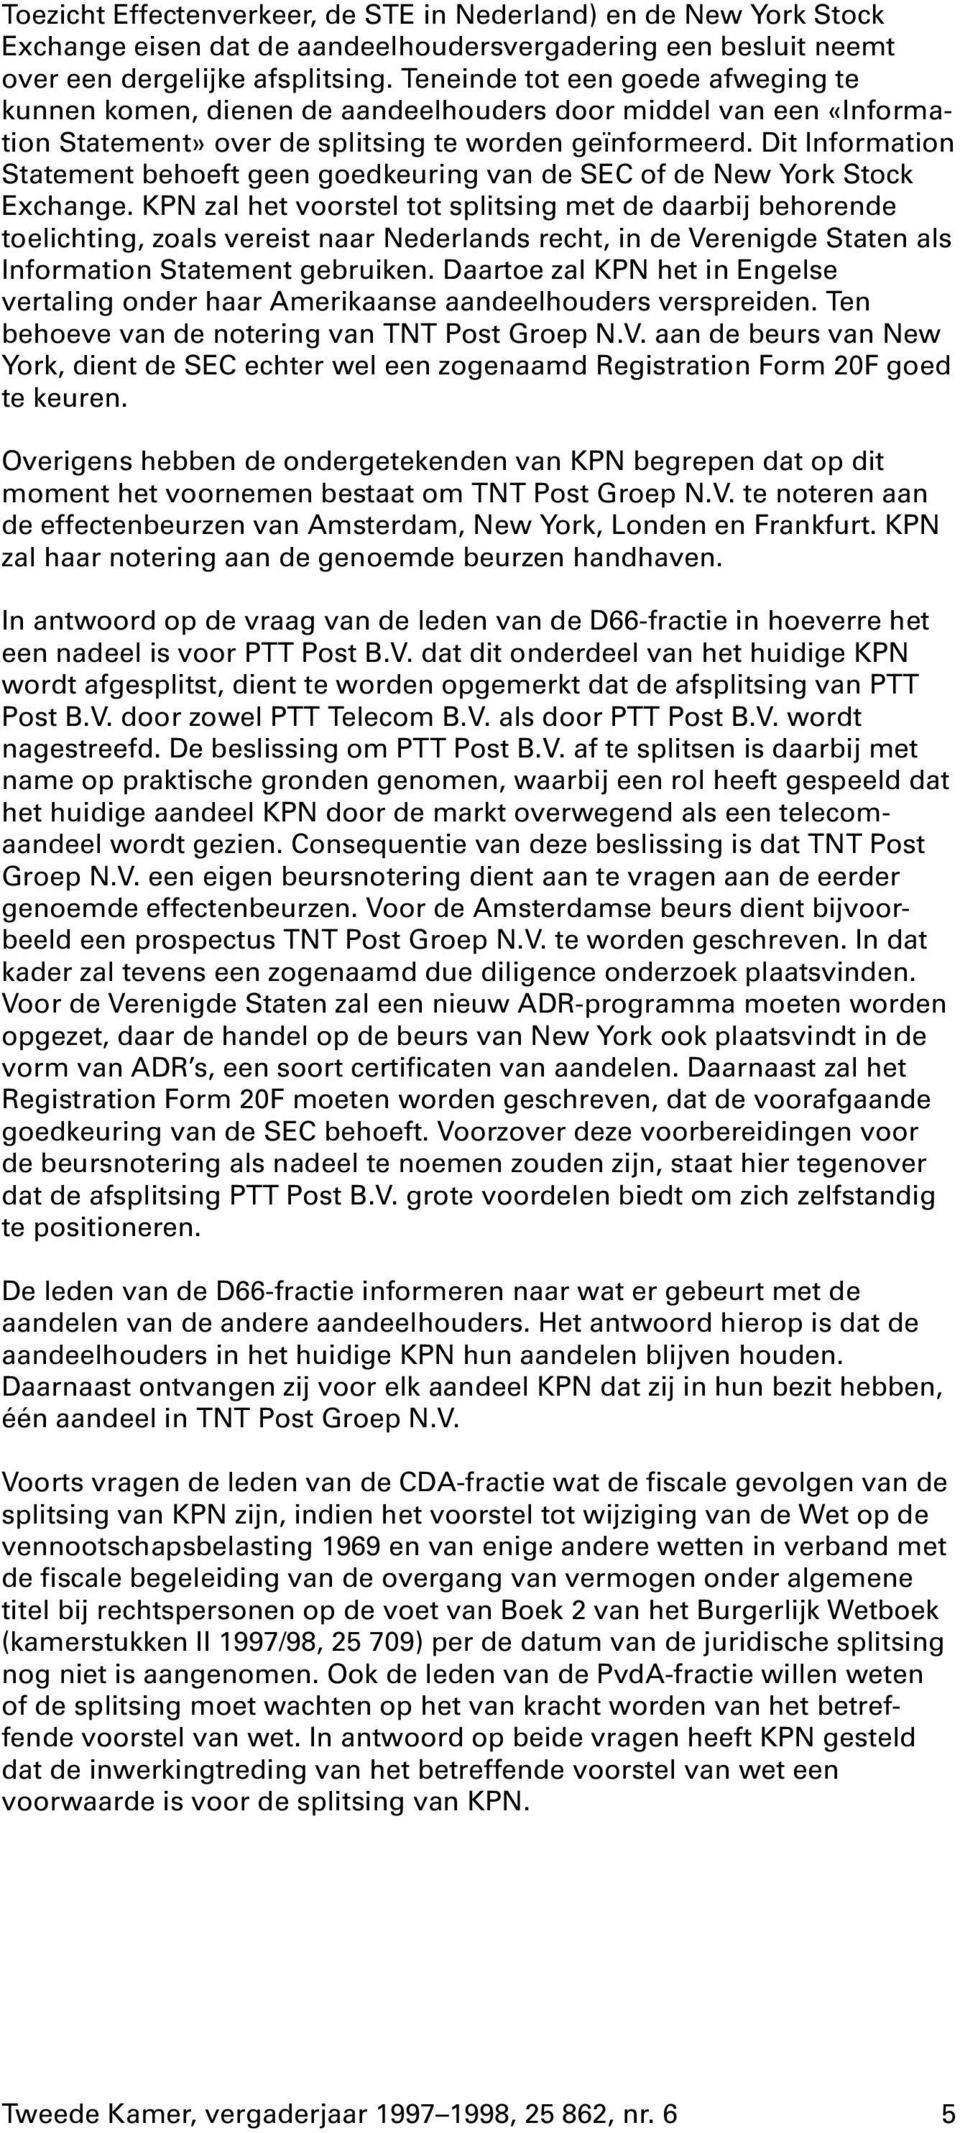 Dit Information Statement behoeft geen goedkeuring van de SEC of de New York Stock Exchange.